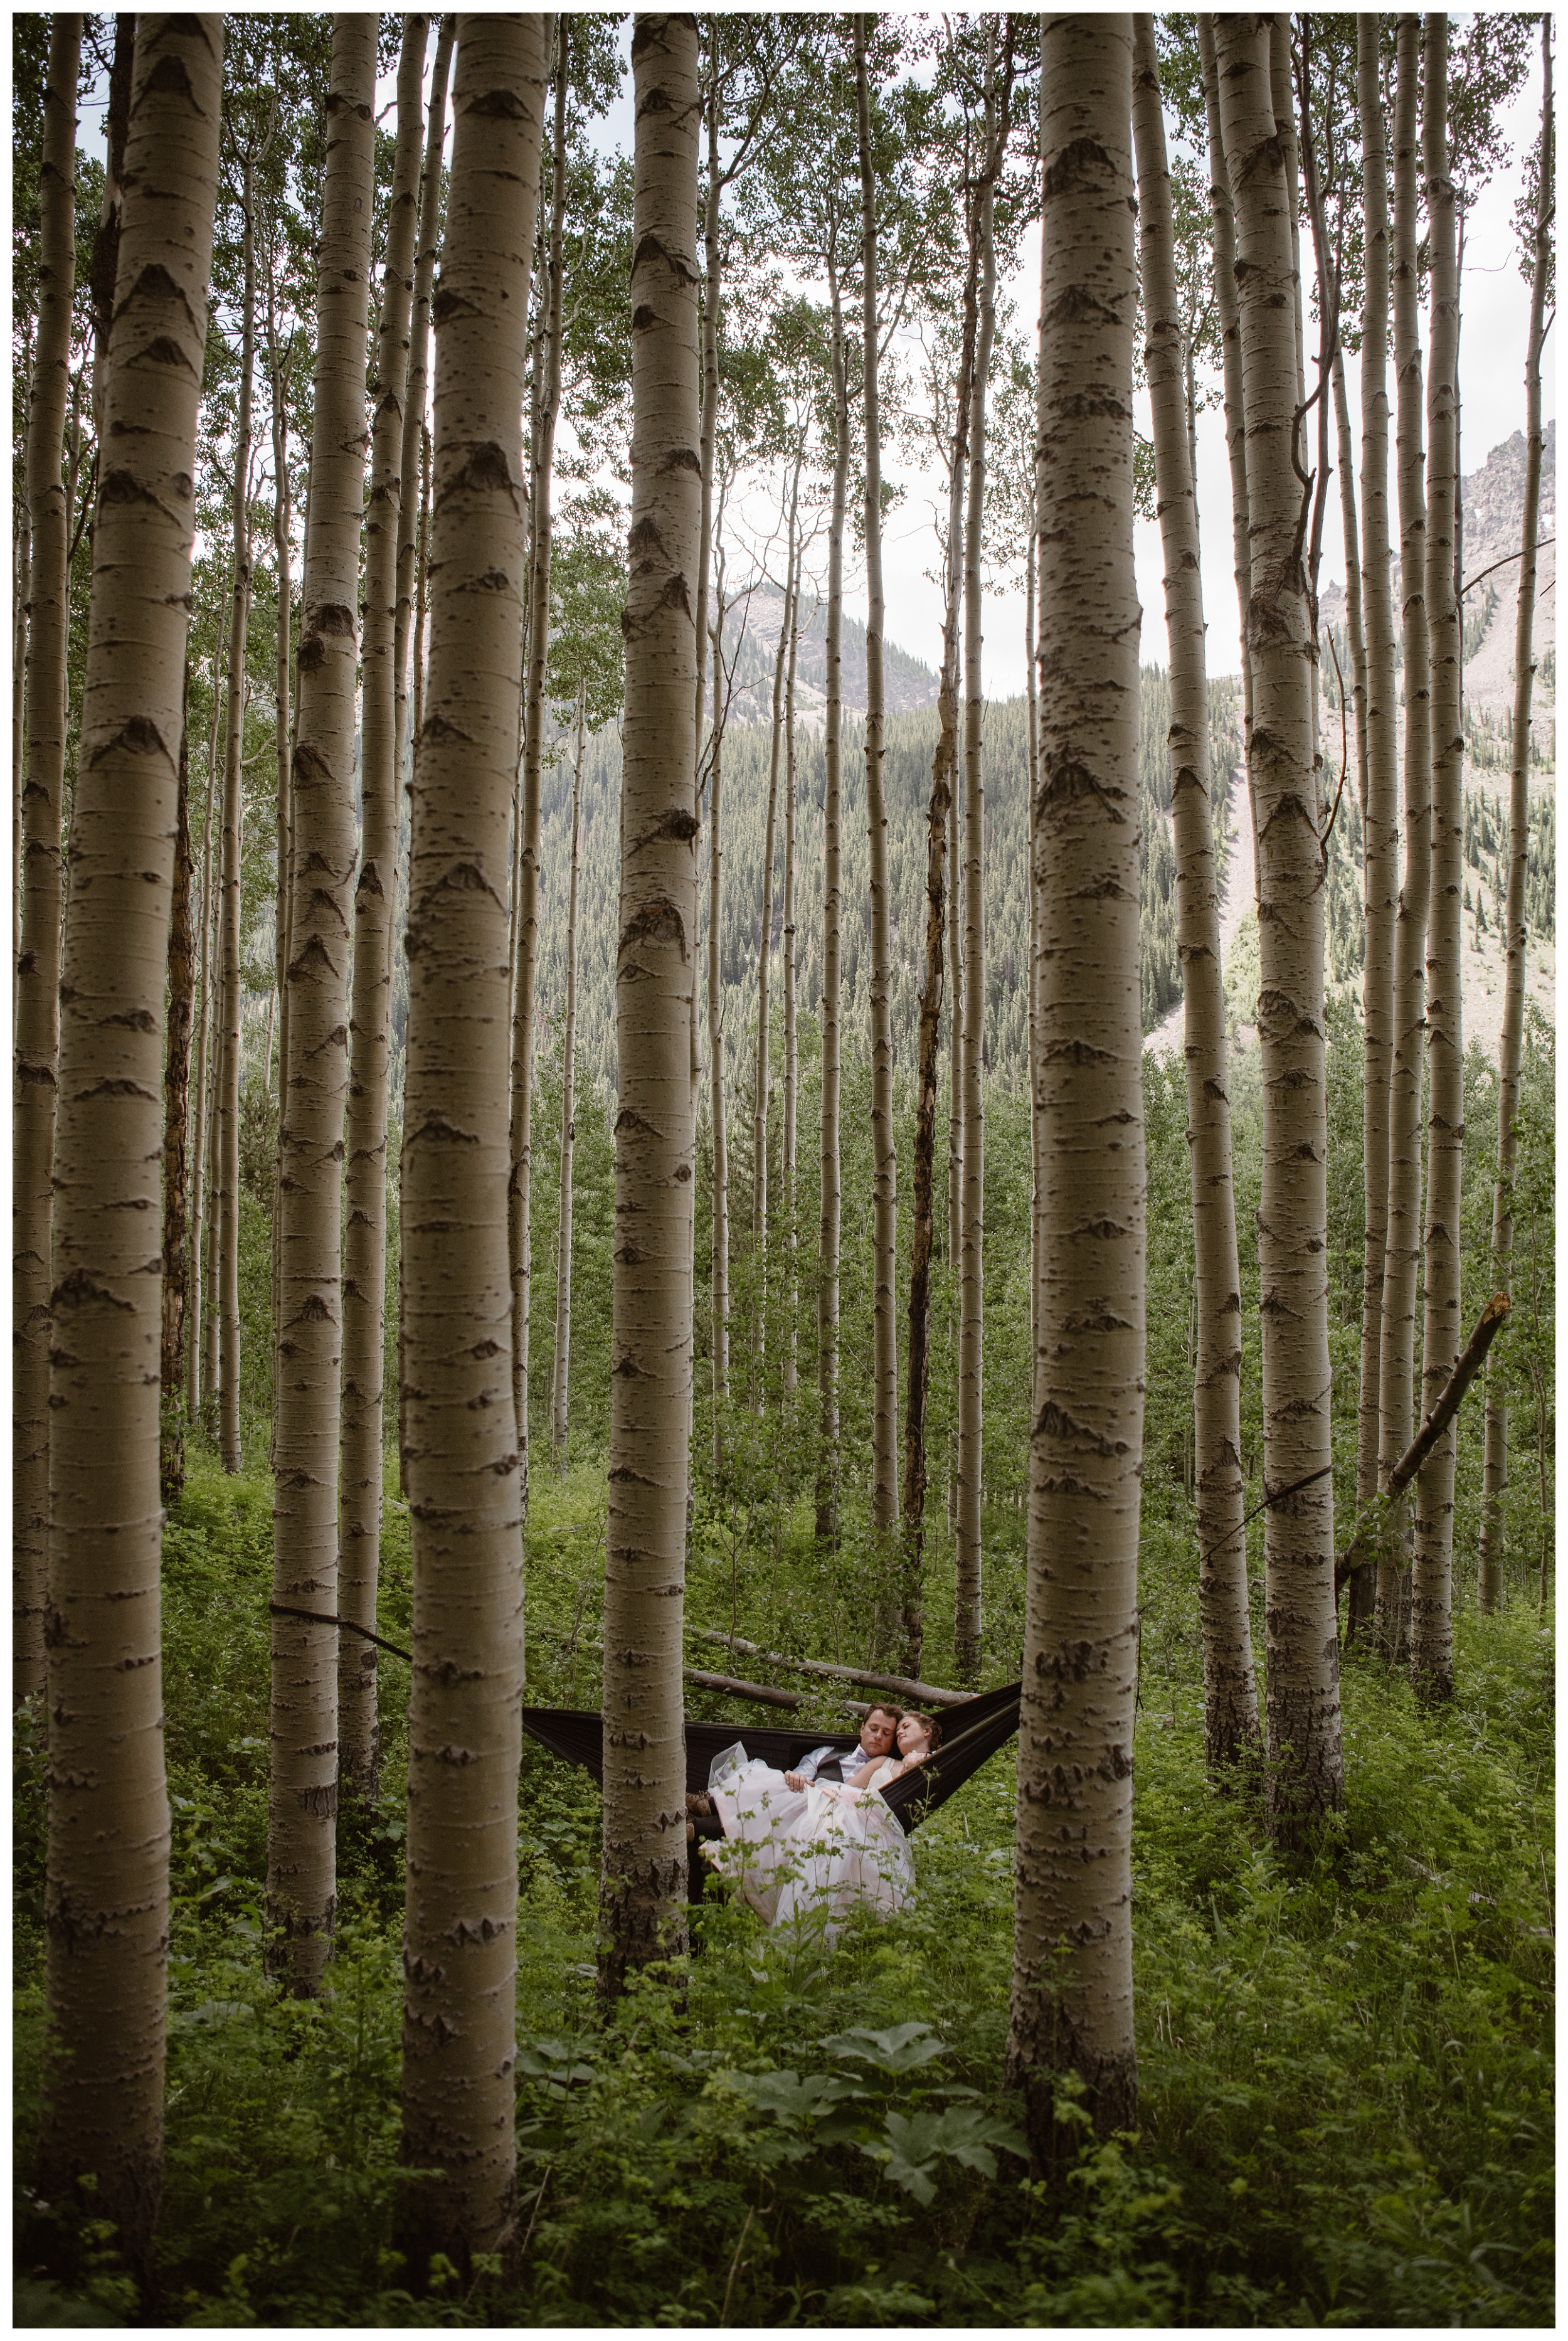 Marcela and Vasily are dwarfed in their pack hammock, hanging between old growth aspen trees outside the Maroon Bells, following their intimate elopement ceremony at the top of Independence Pass. Photo by Maddie Mae, Adventure Instead.